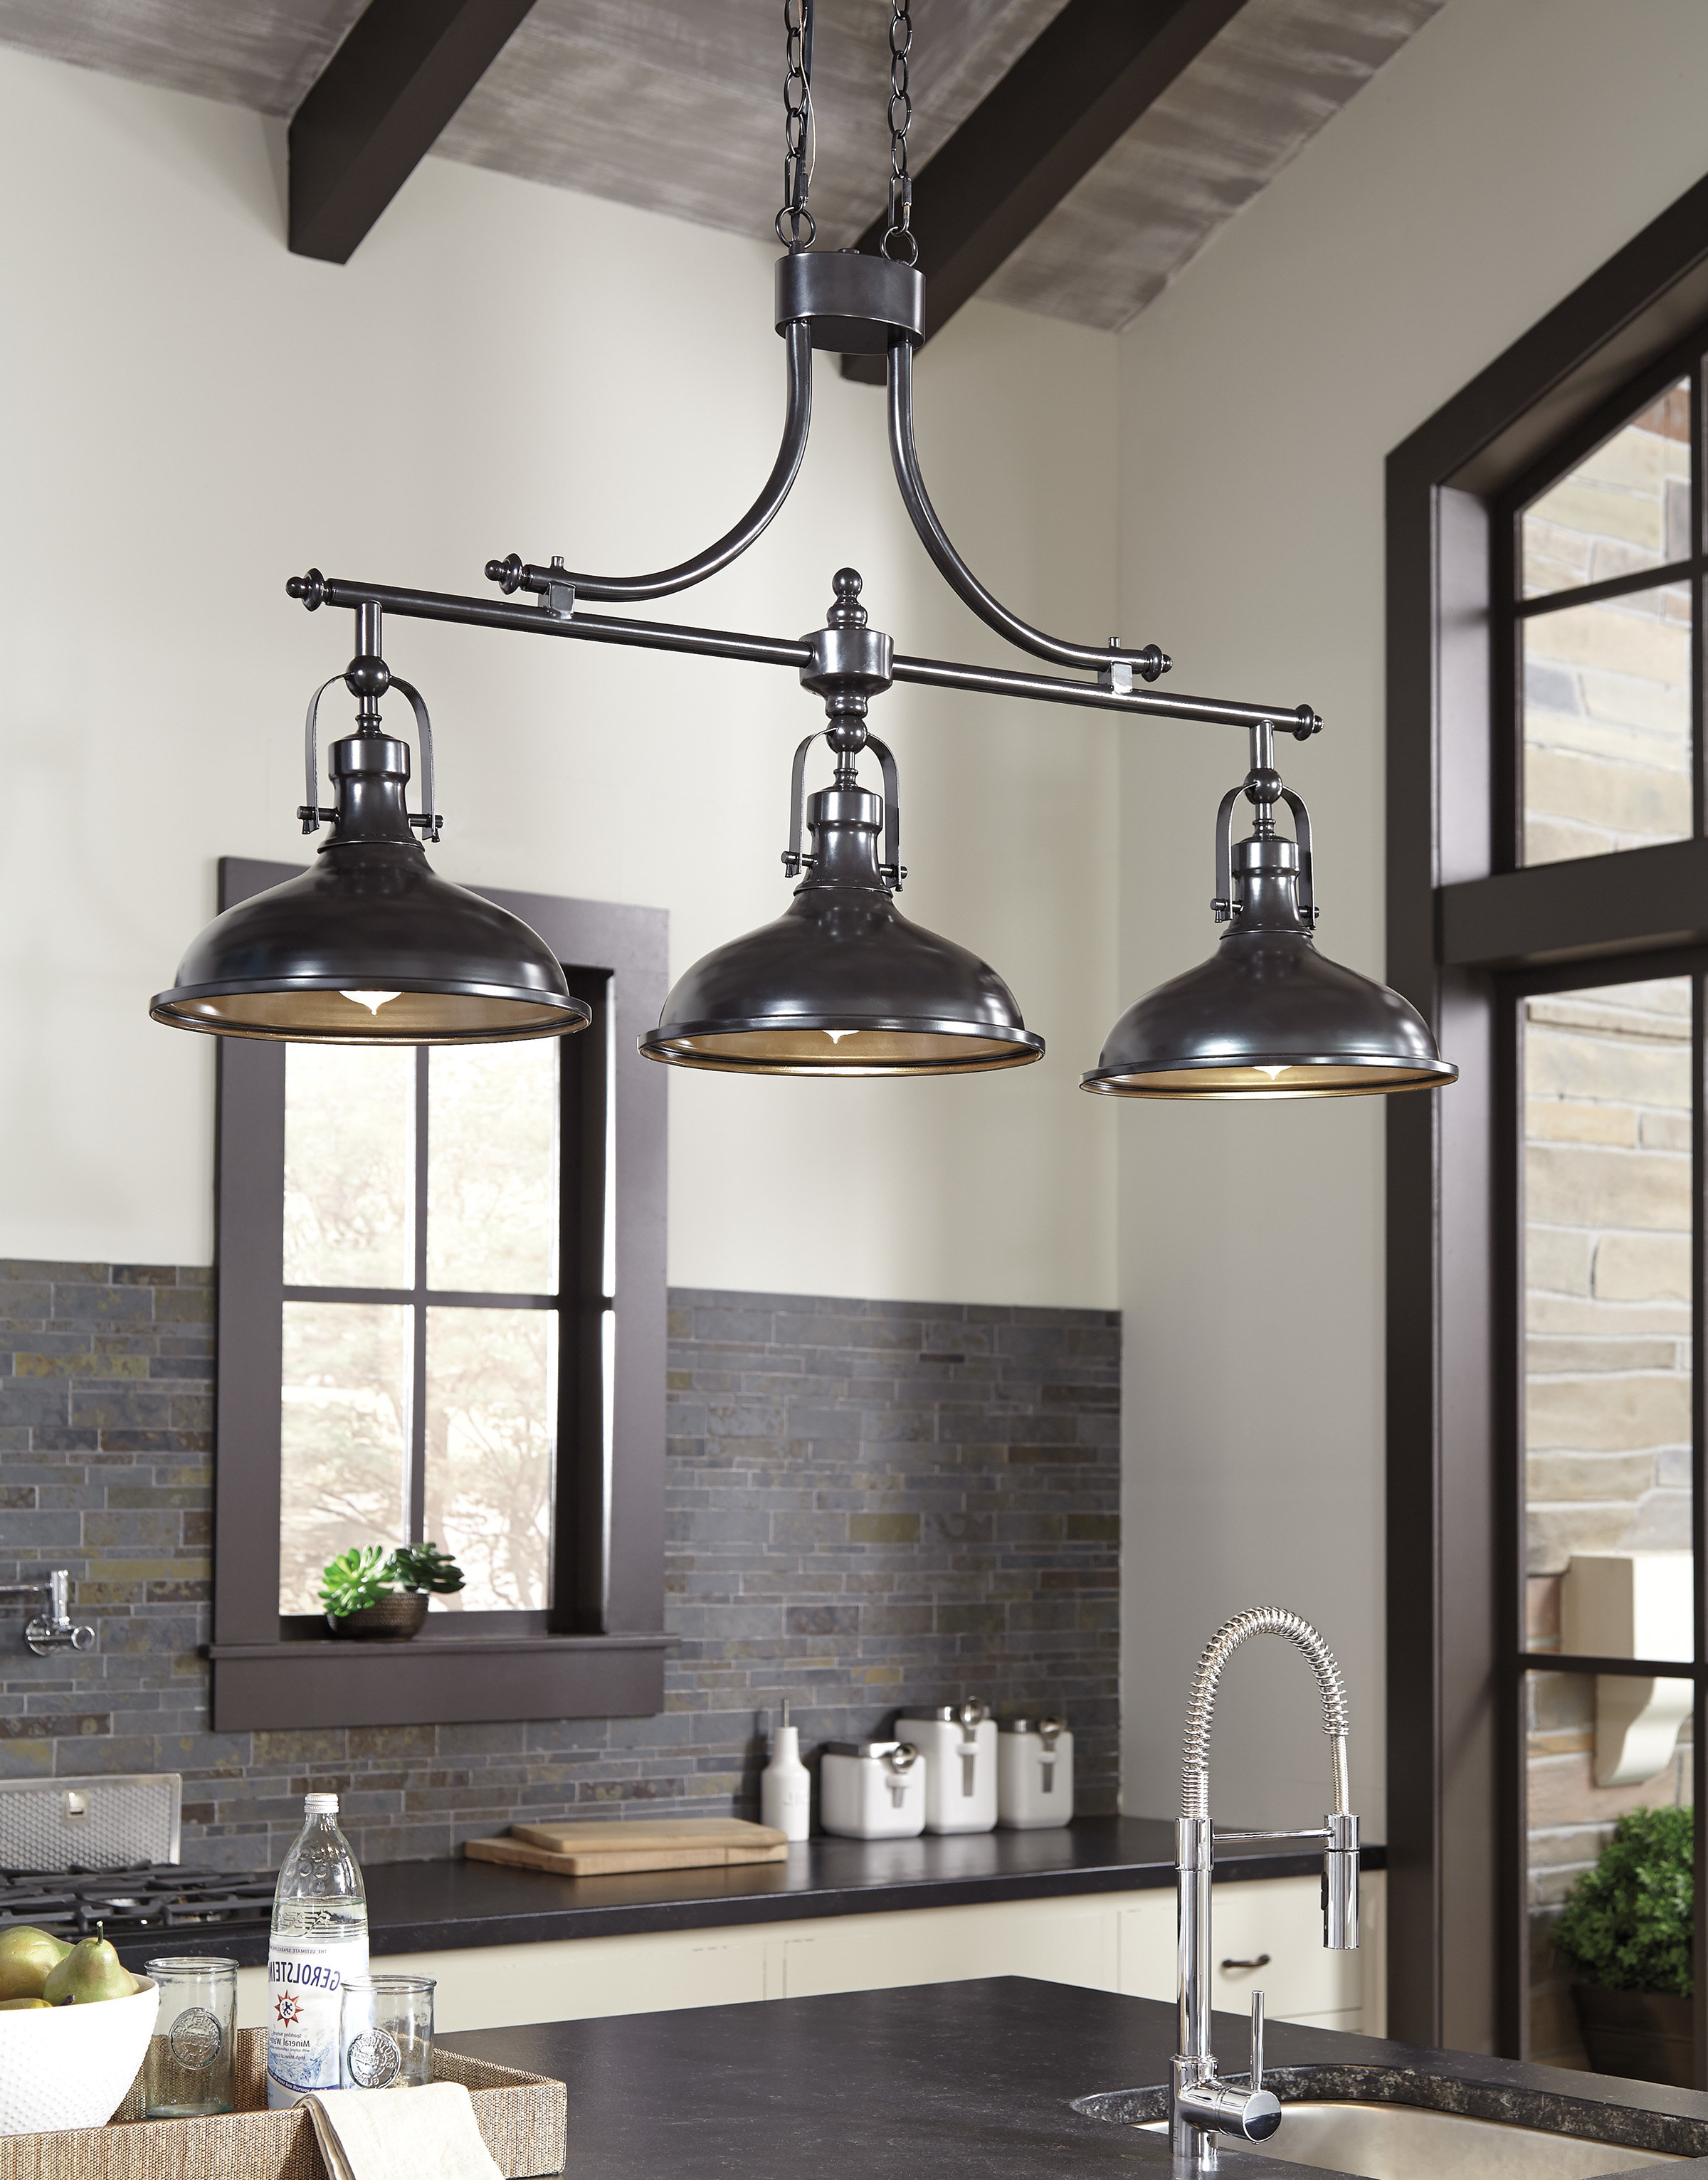 Beachcrest Home Martinique 3-Light Kitchen Island Pendant regarding 2019 Warner Robins 3-Light Lantern Pendants